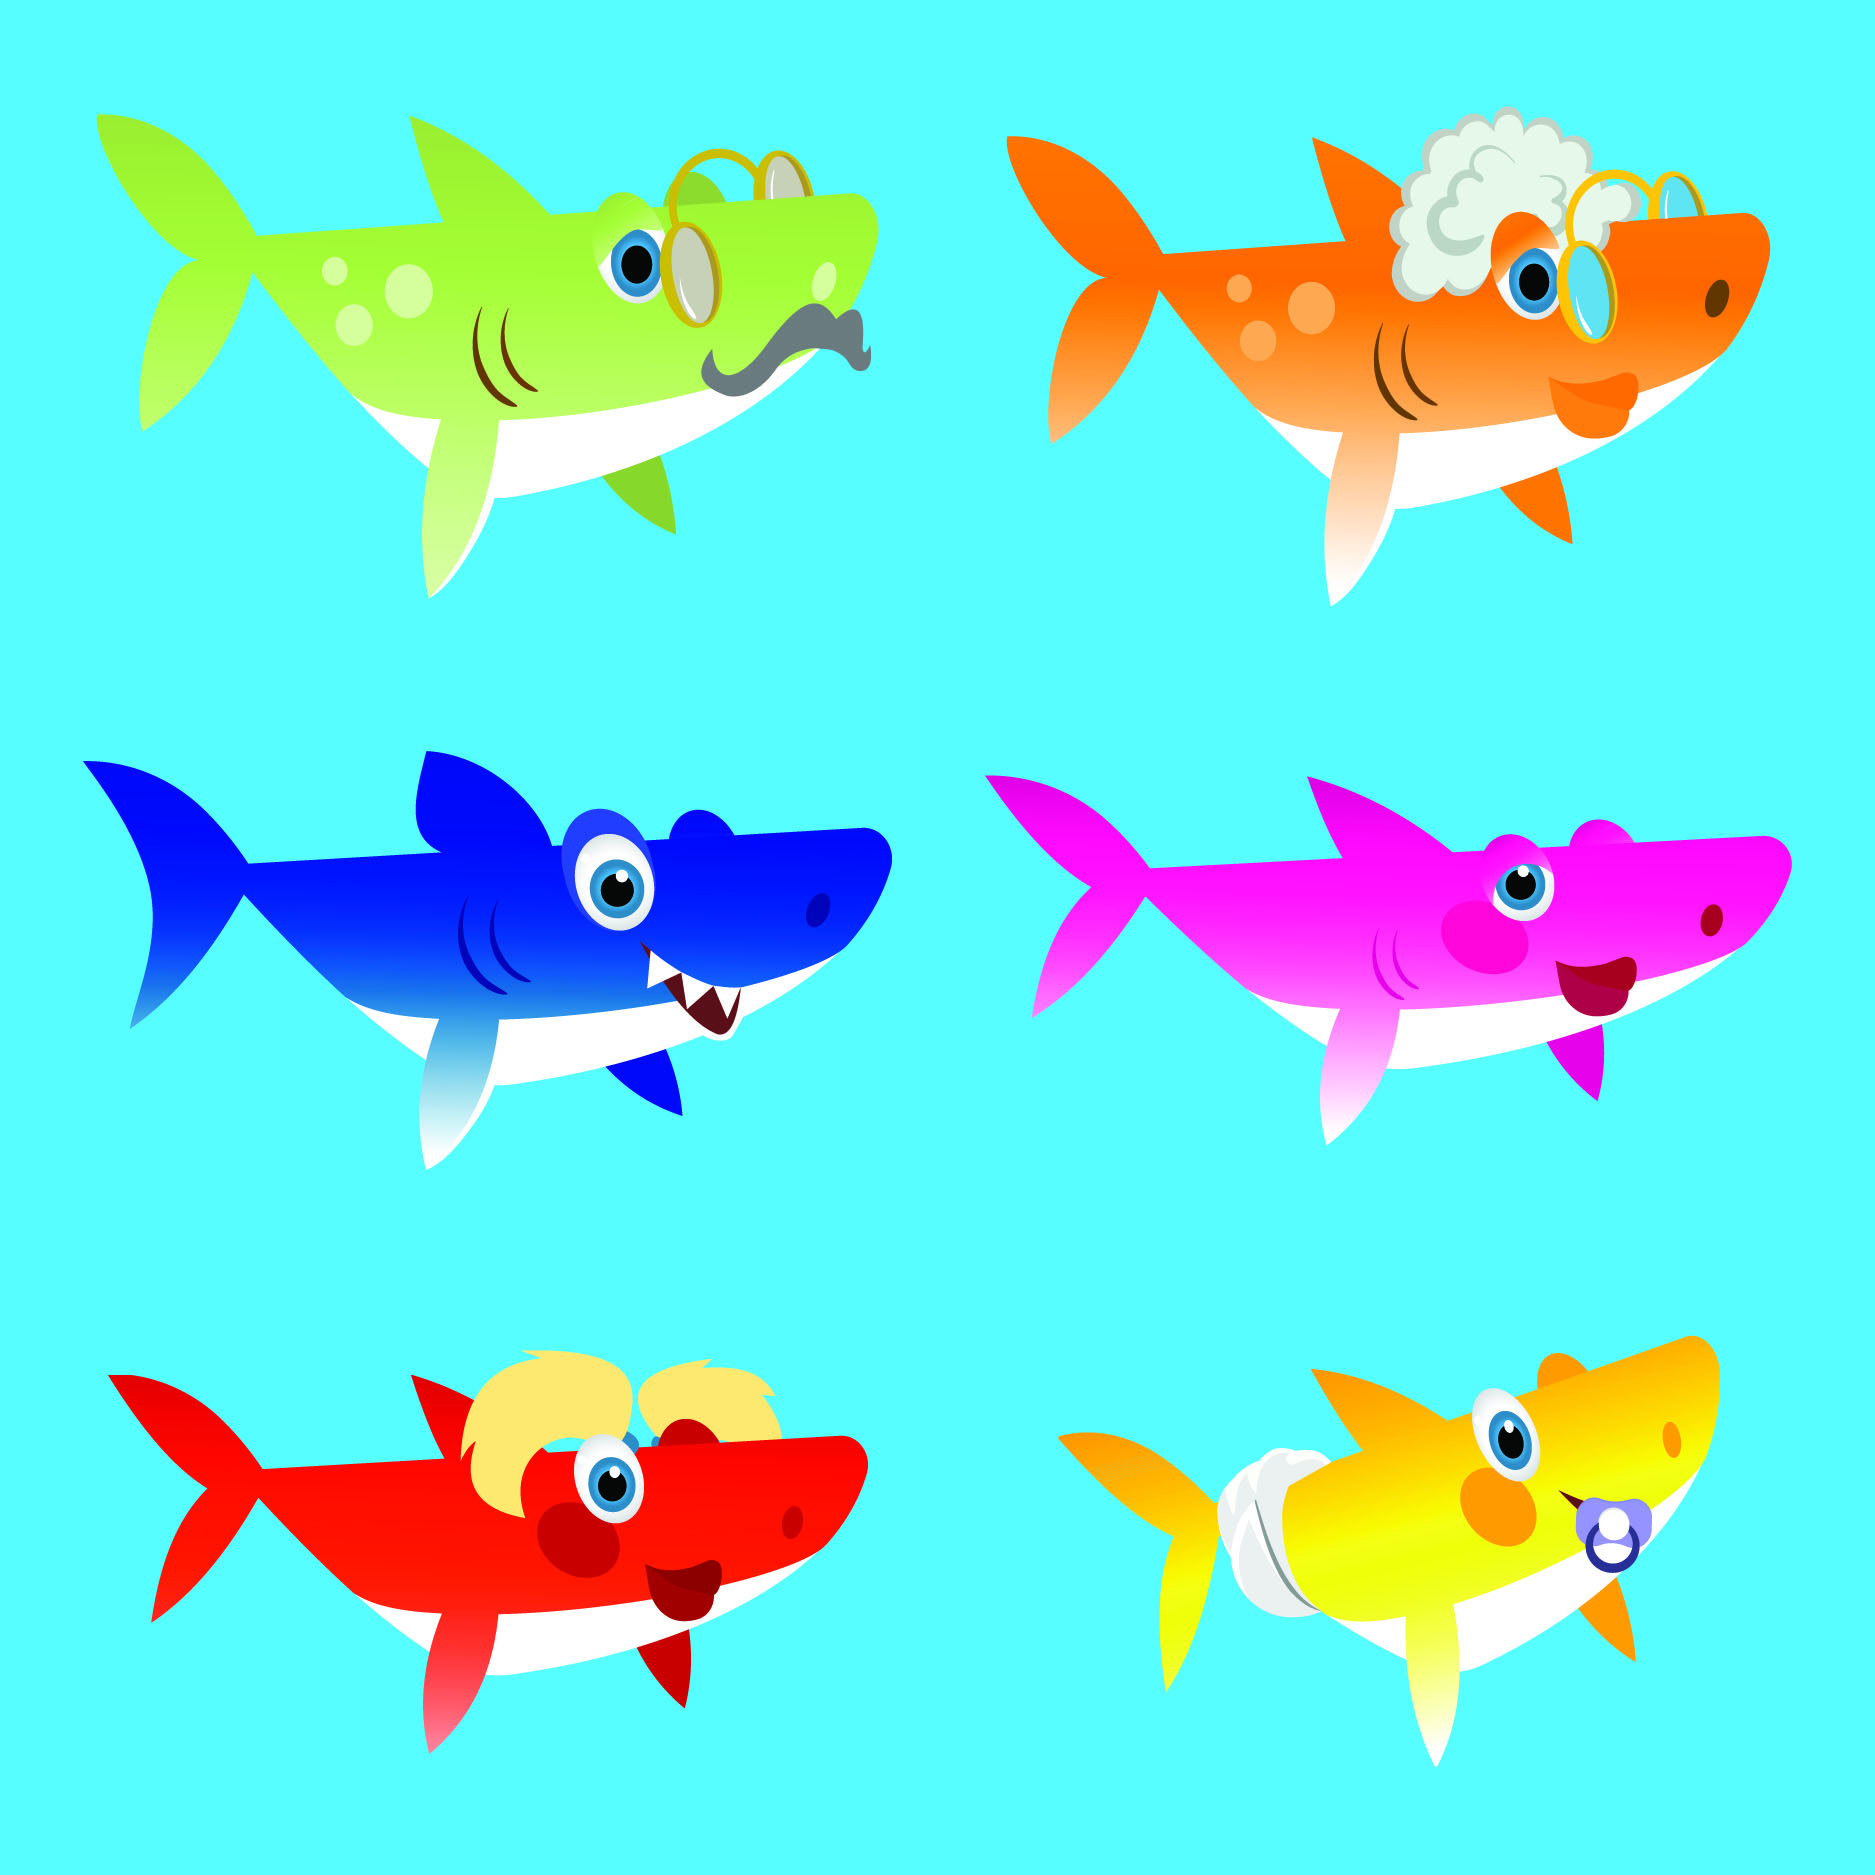 Prepare Your Toddlers — 'Baby Shark' Is Now Going to Be a TV Series on Nickelodeon